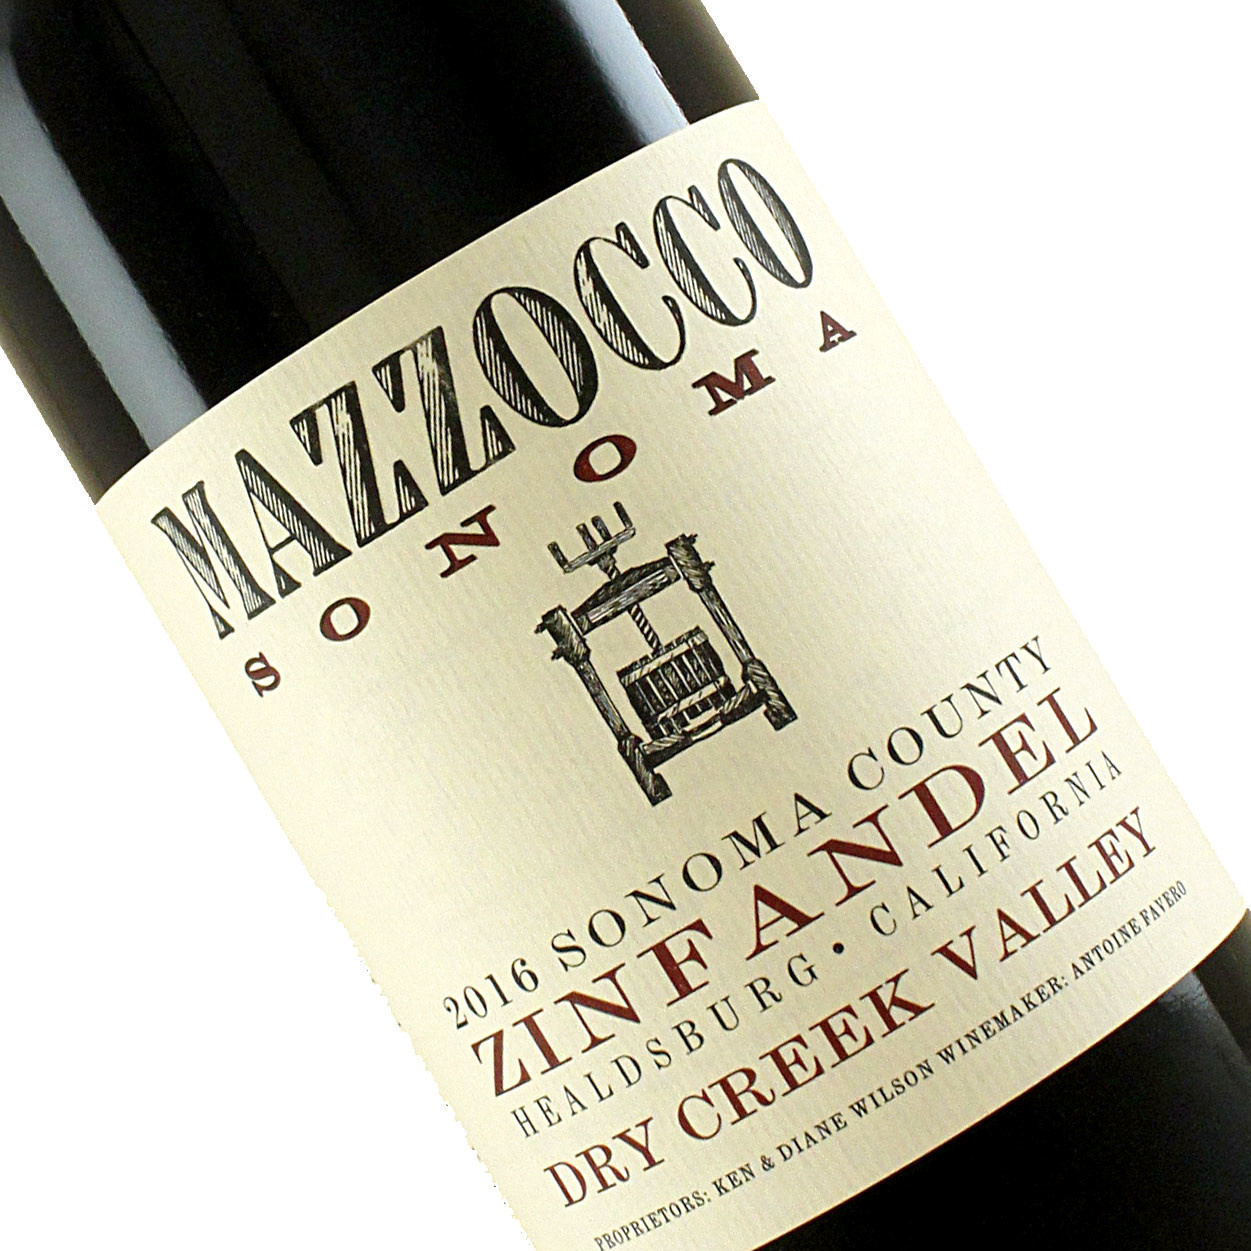 Mazzocco 2016 Zinfandel Dry Creek Valley, Sonoma County